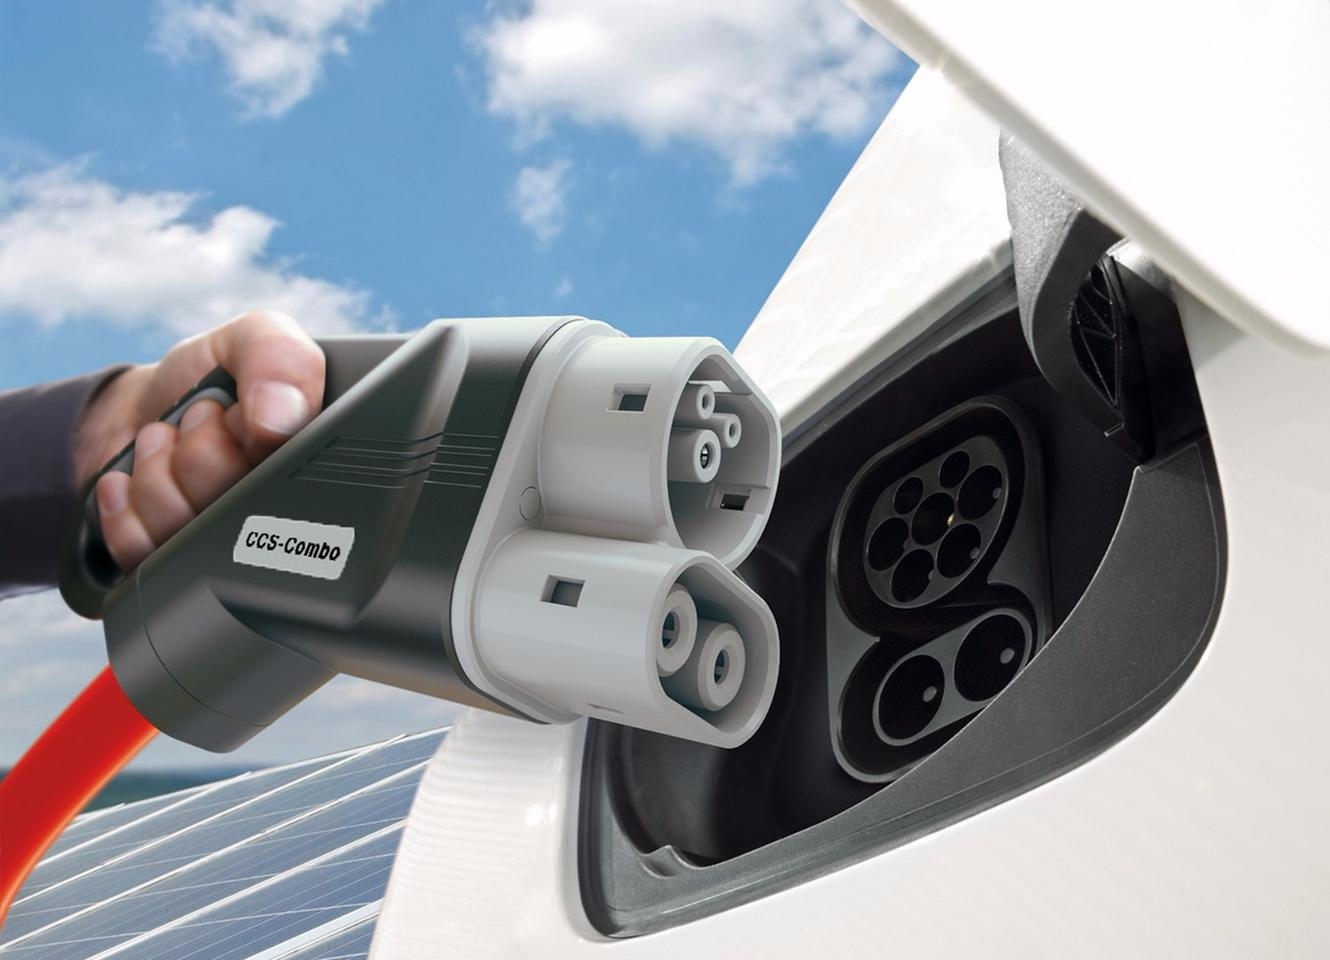 The 350-kW chargers will be able to charge compatible vehicles more quickly than the most powerful chargers currently in use